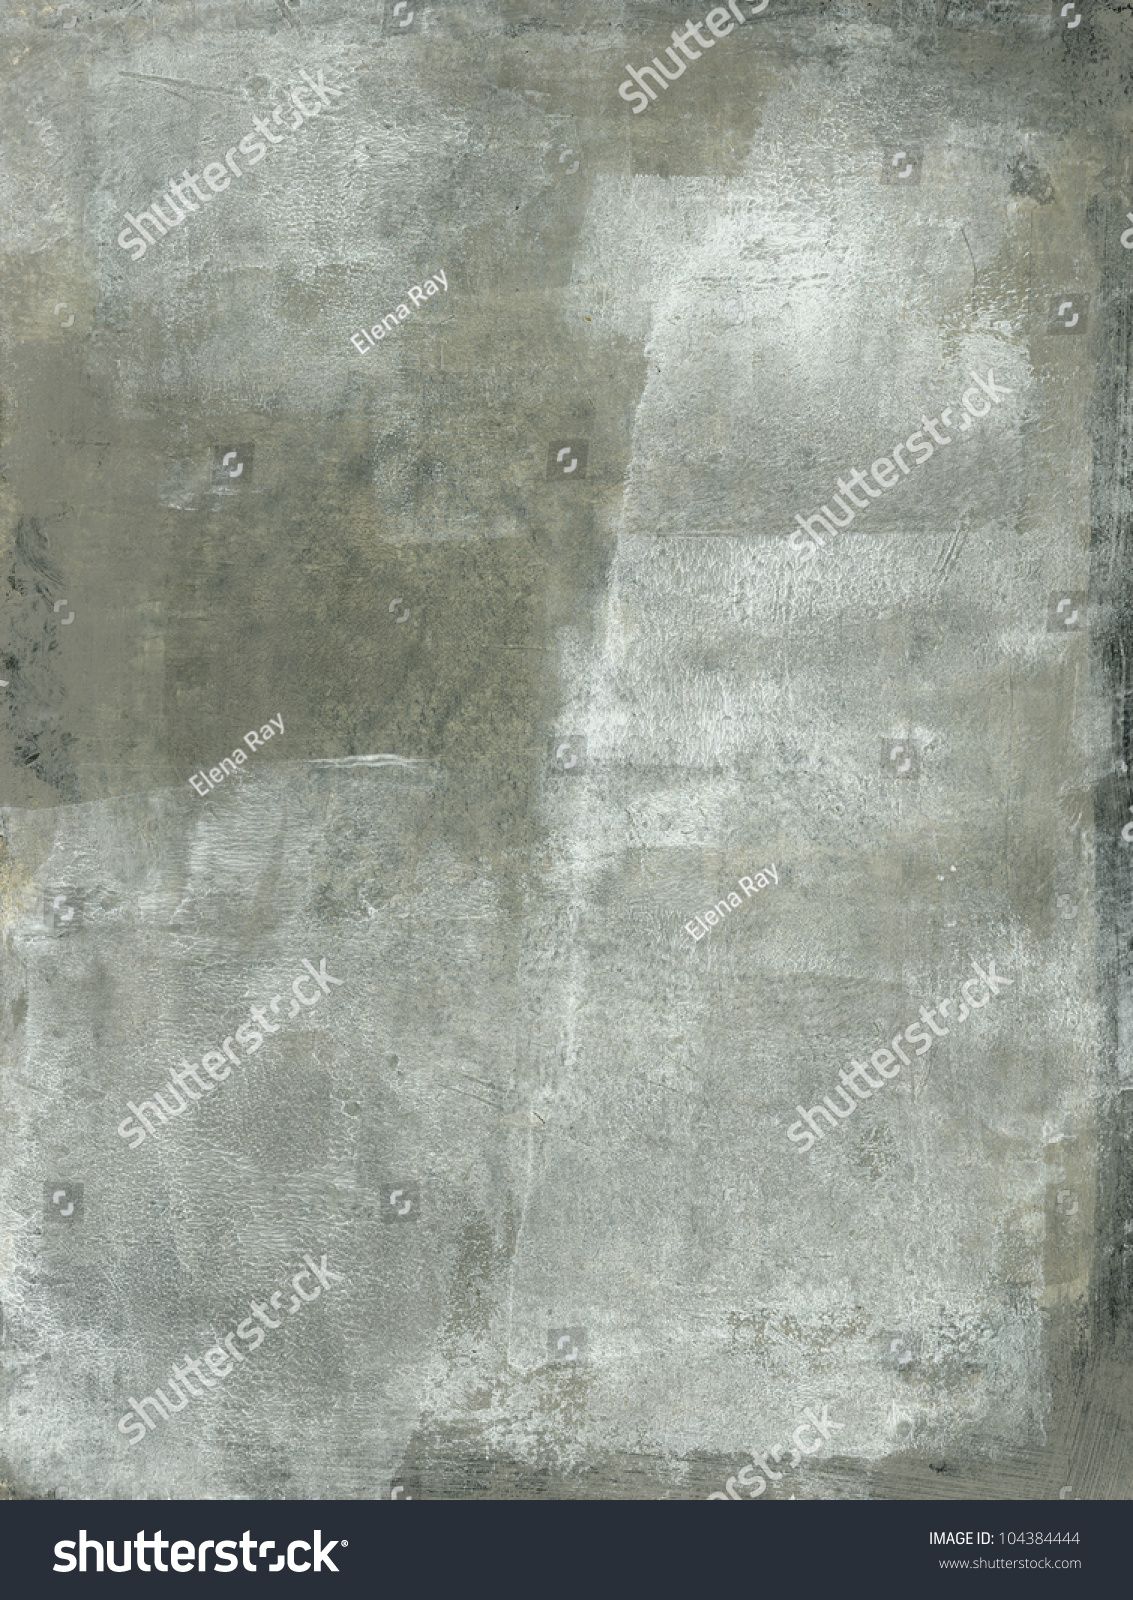 Abstract Painting Subtle Gray White Tones Stock Photo